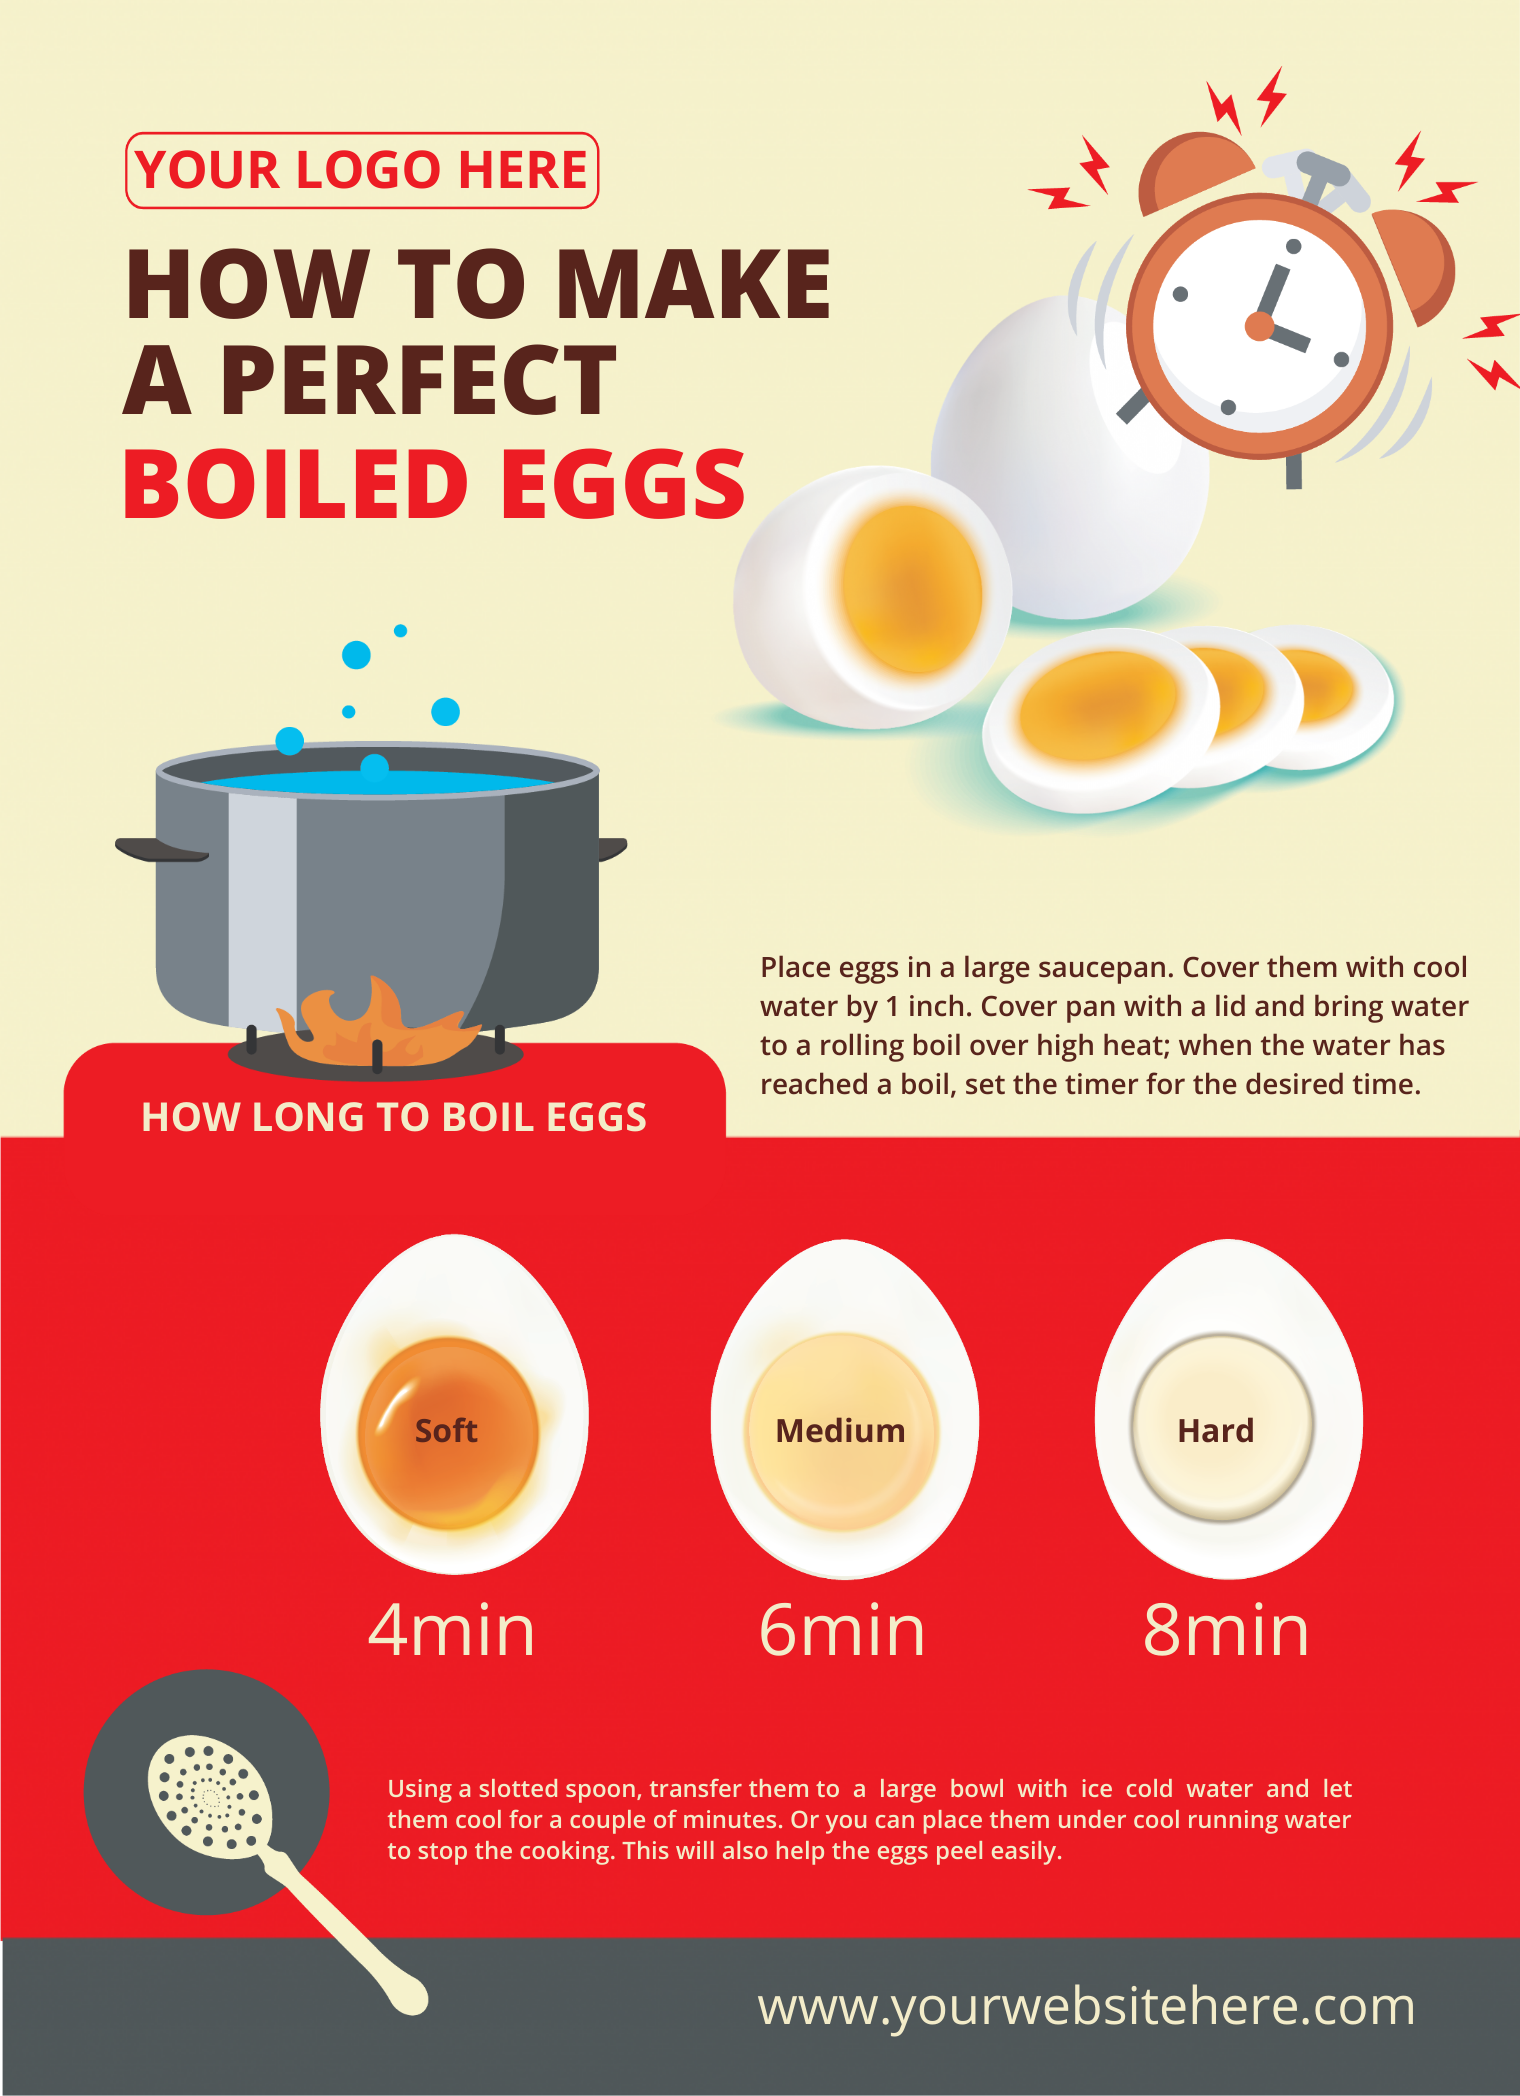 an infographic about how to make boiled eggs